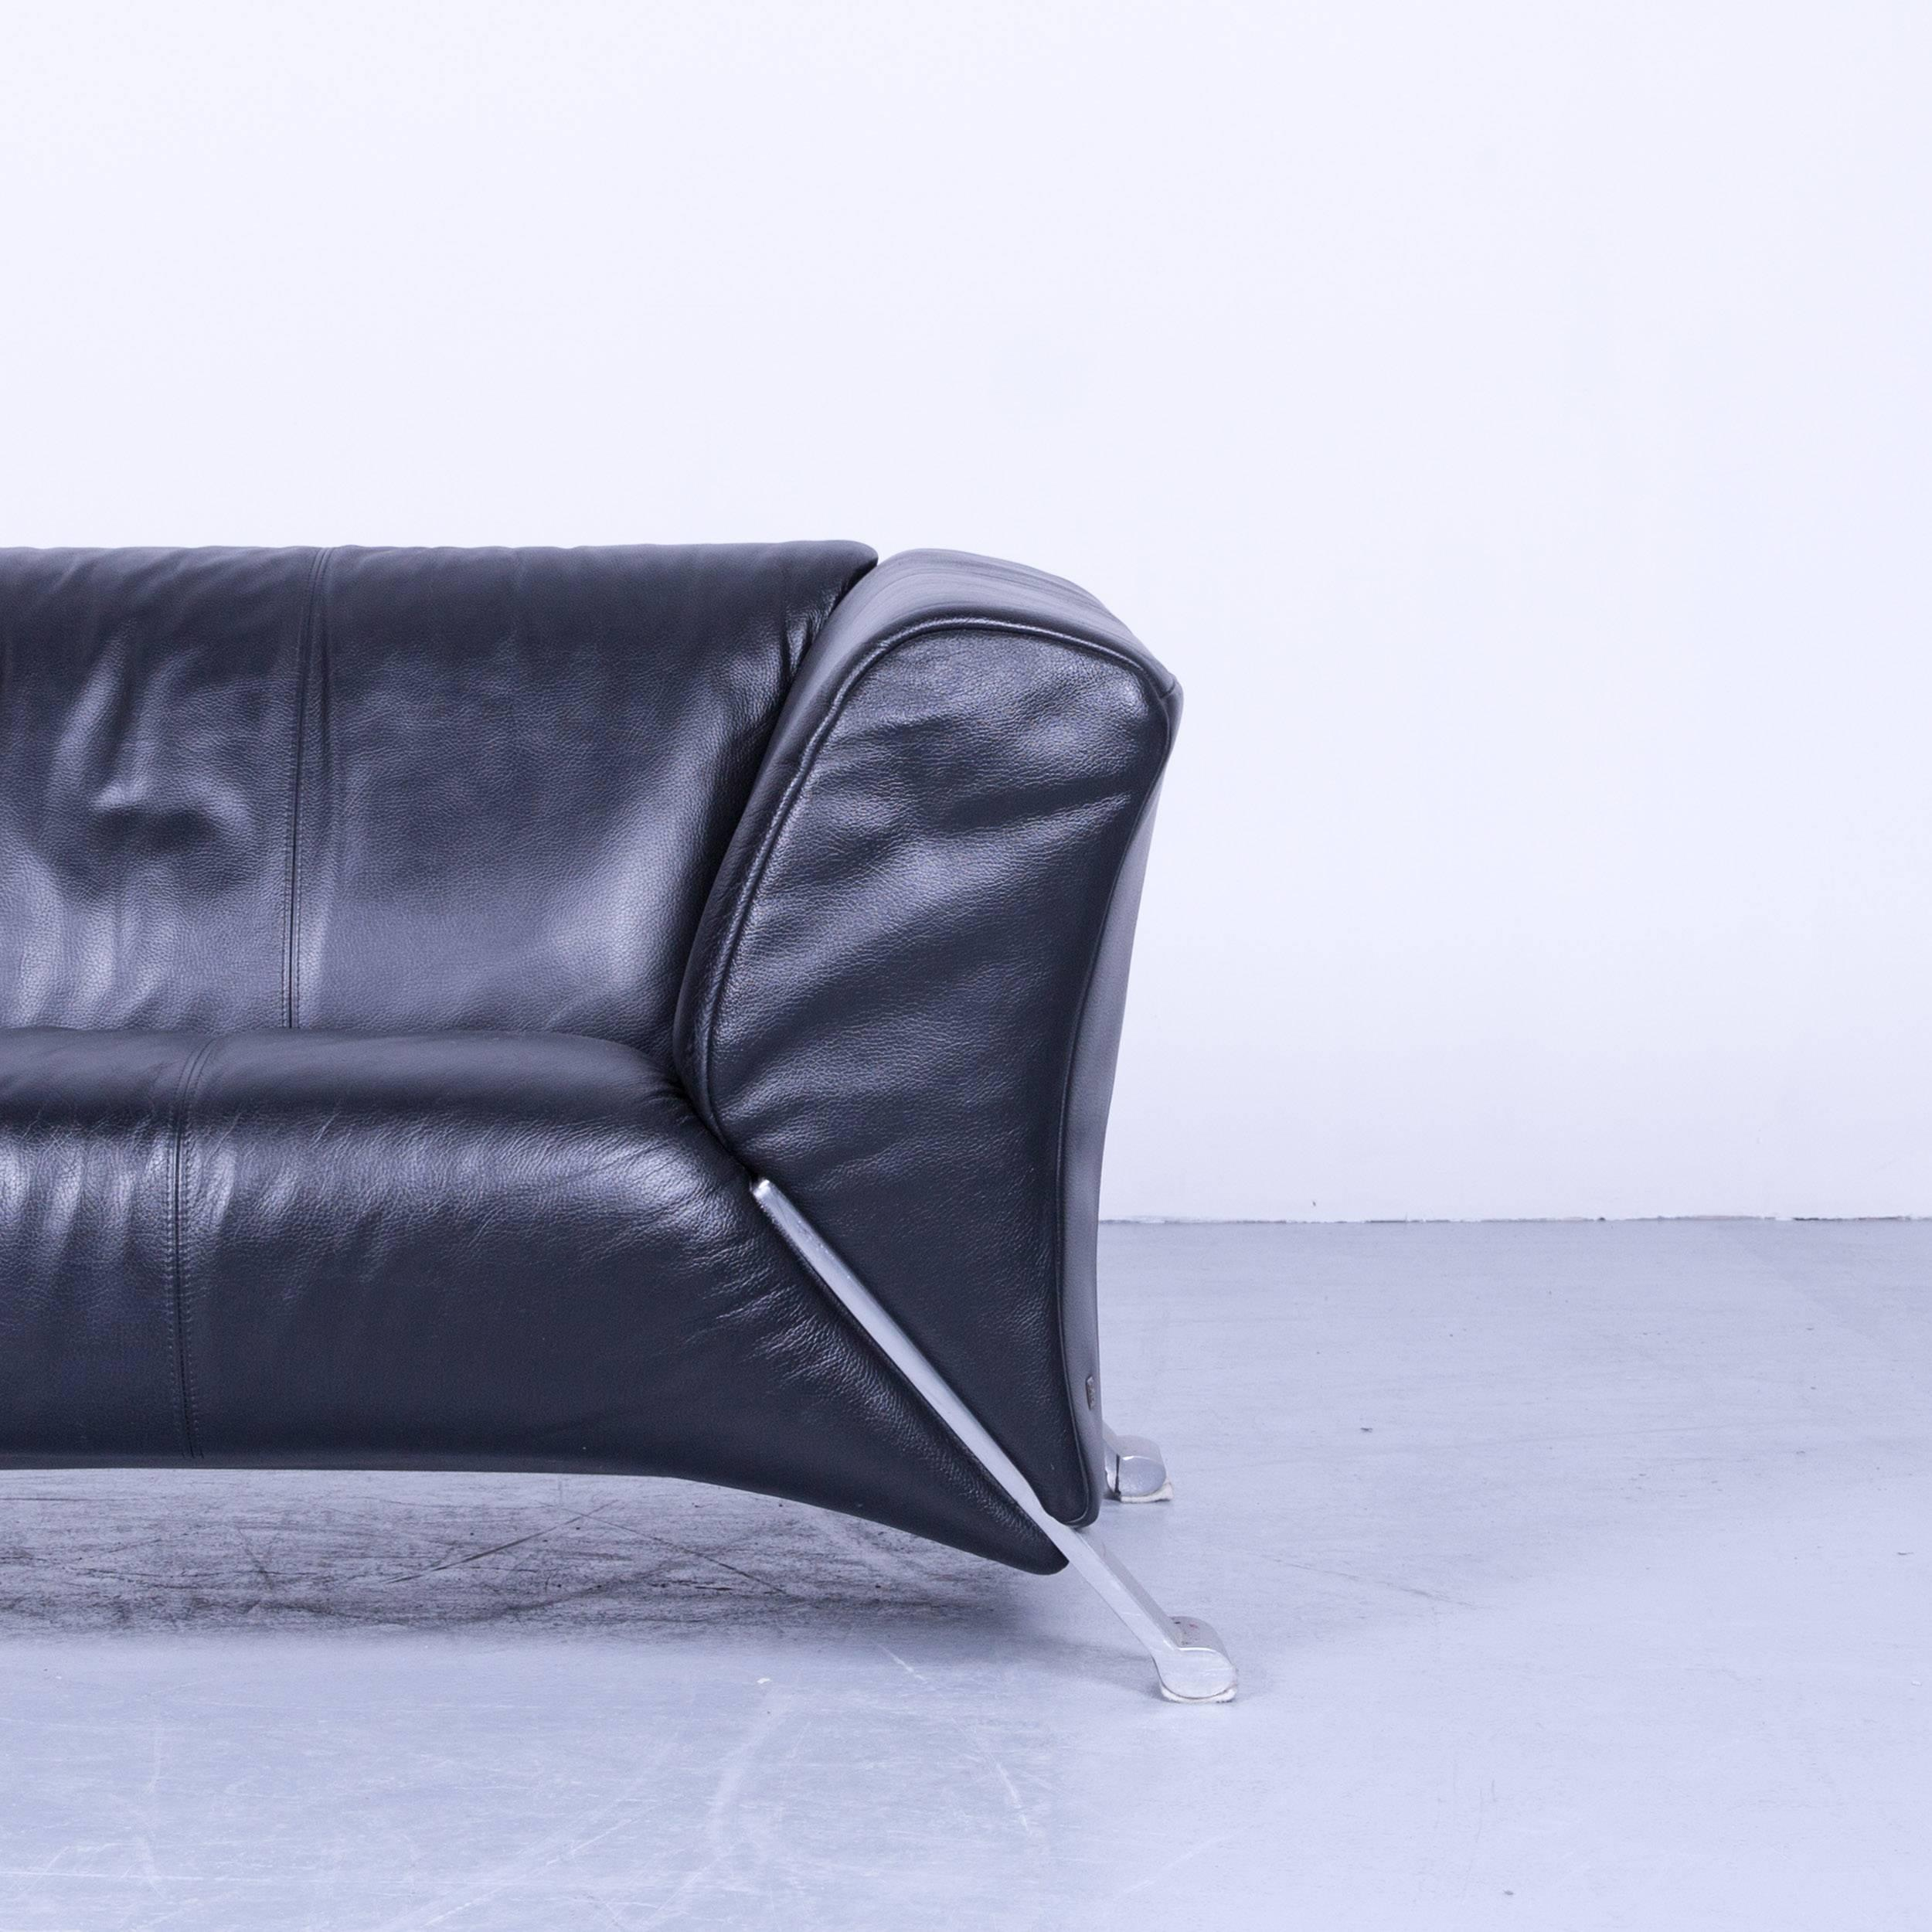 Finest German Rolf Benz Designer Sofa Black Twoseat Leather Modern Couch  Metal Feet For With Sofa Leder Schwarz With Sofa Leder Schwarz